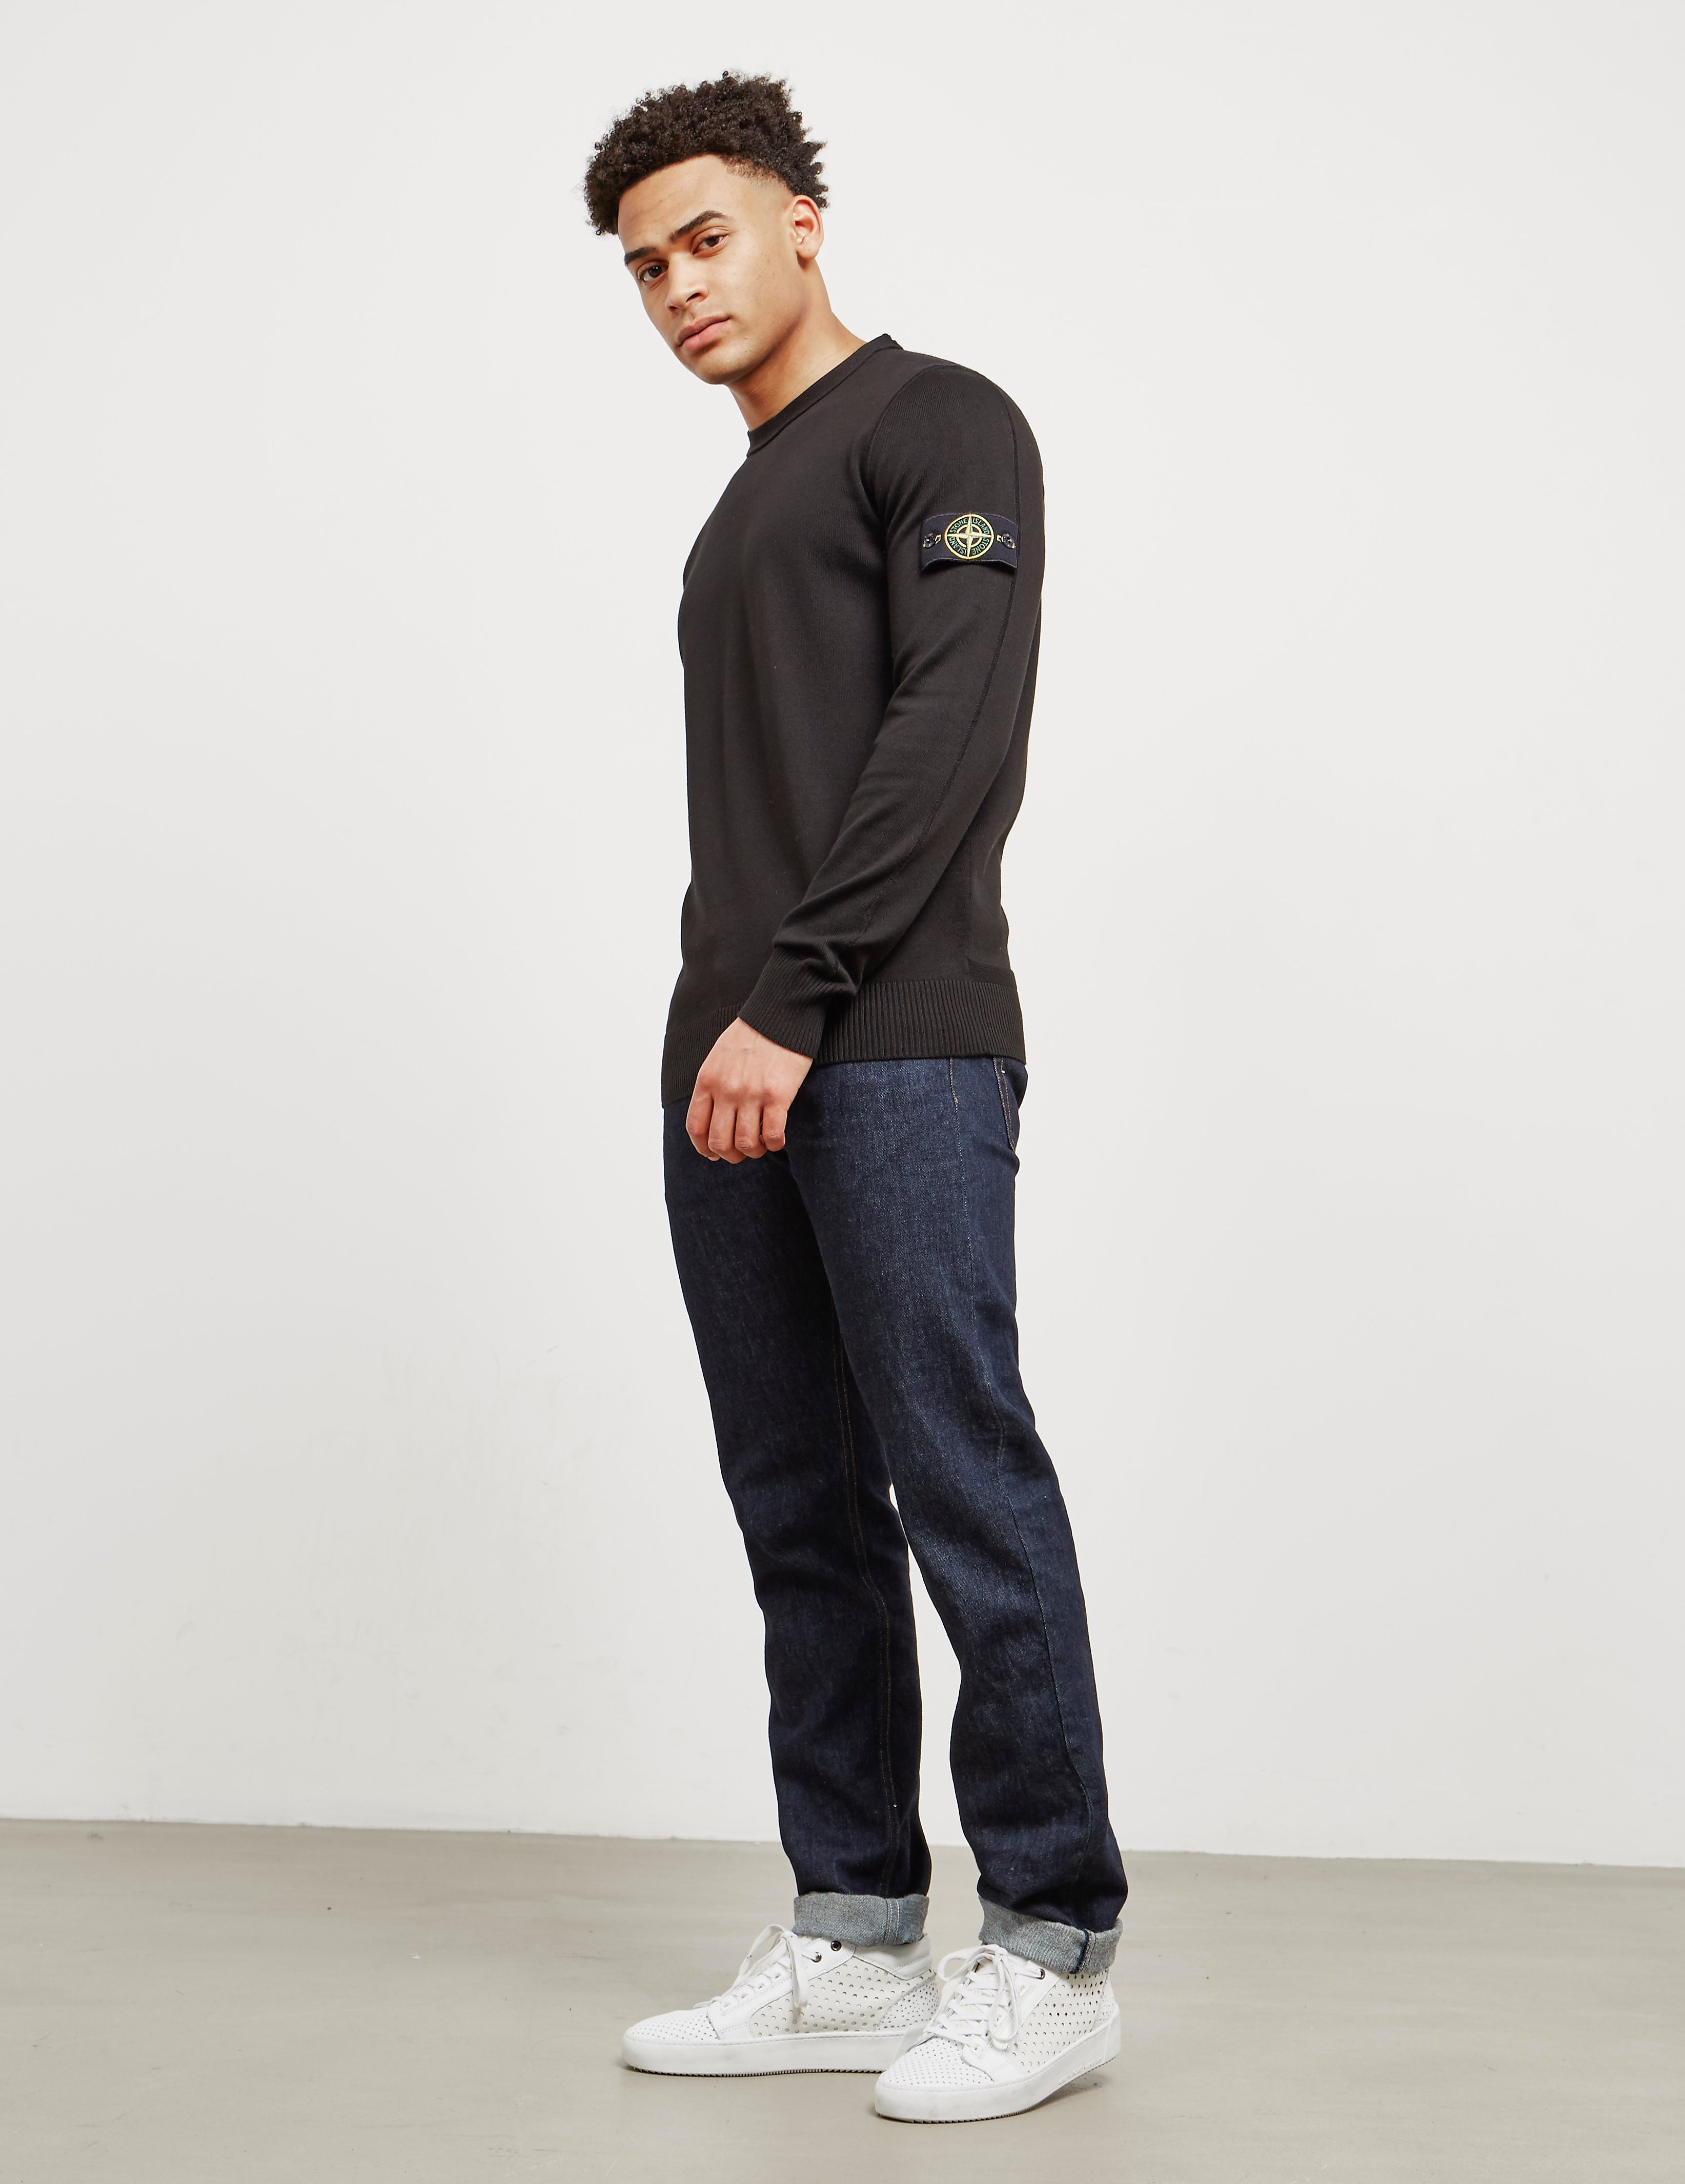 Stone Island Fine Knitted Jumper